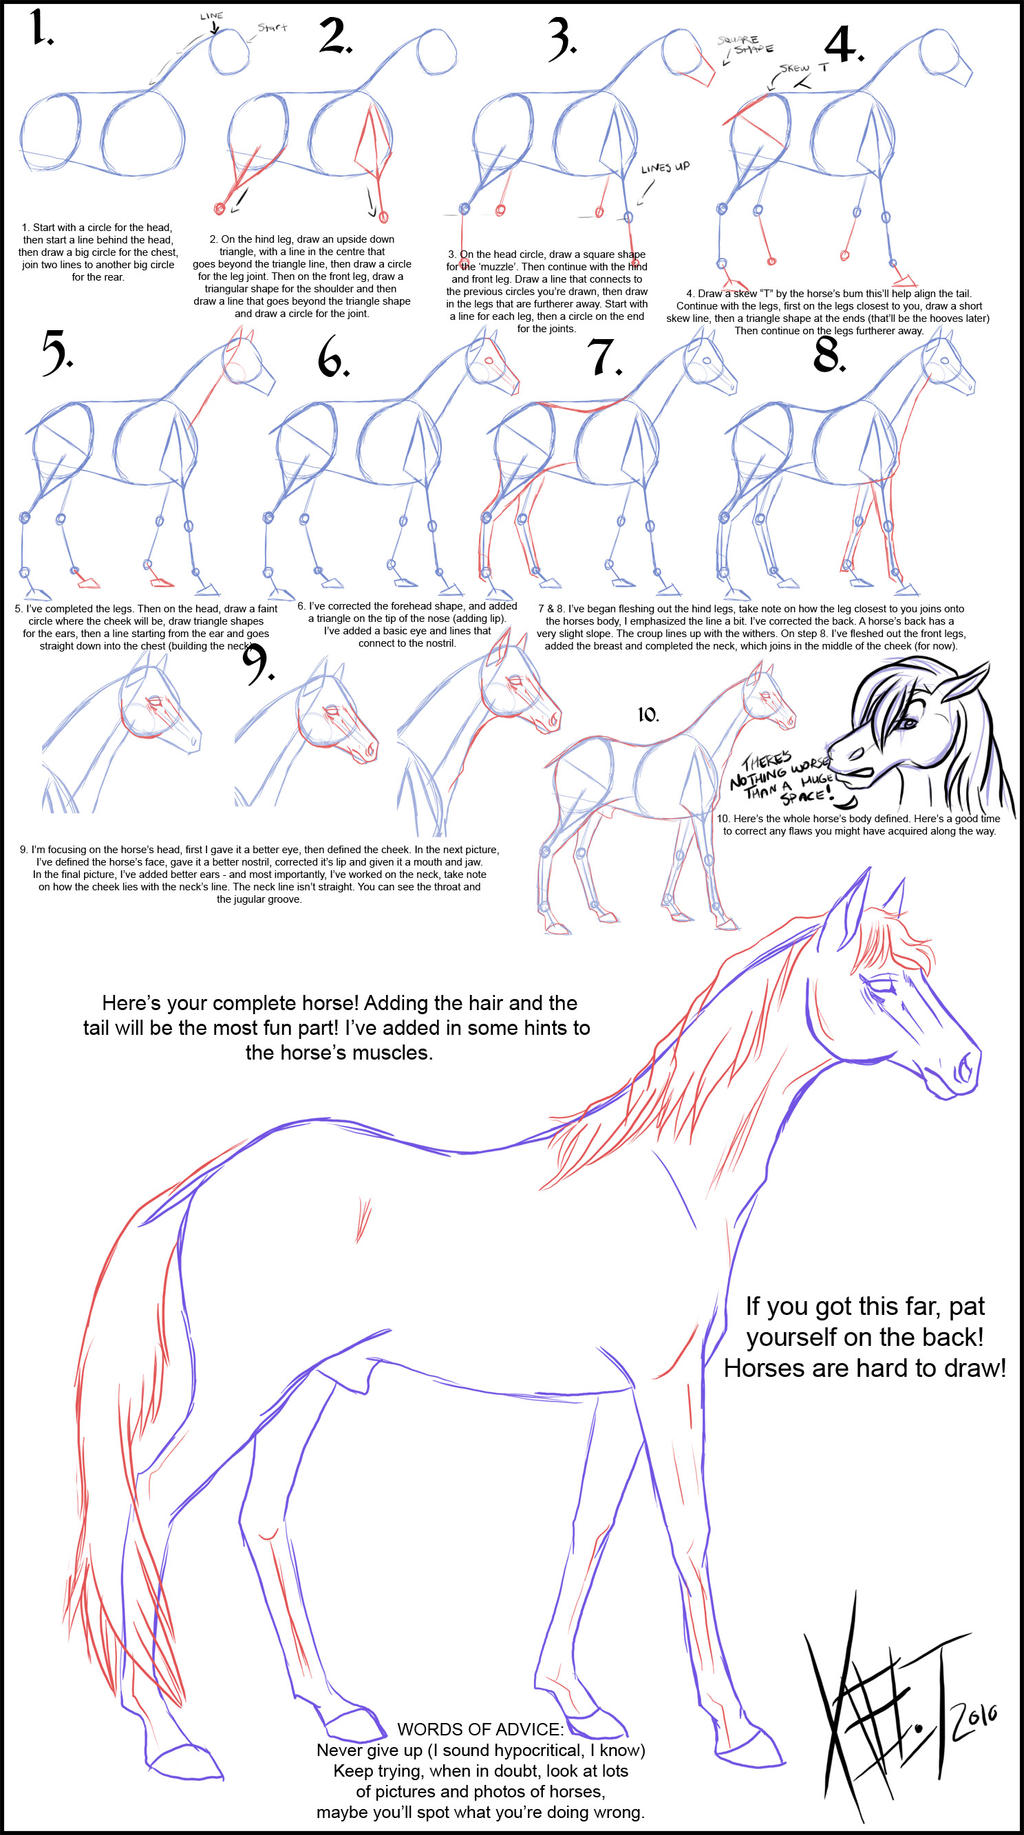 SERIOUSLY HORSING AROUND: Fun graphic on HOW TO DRAW A HORSE